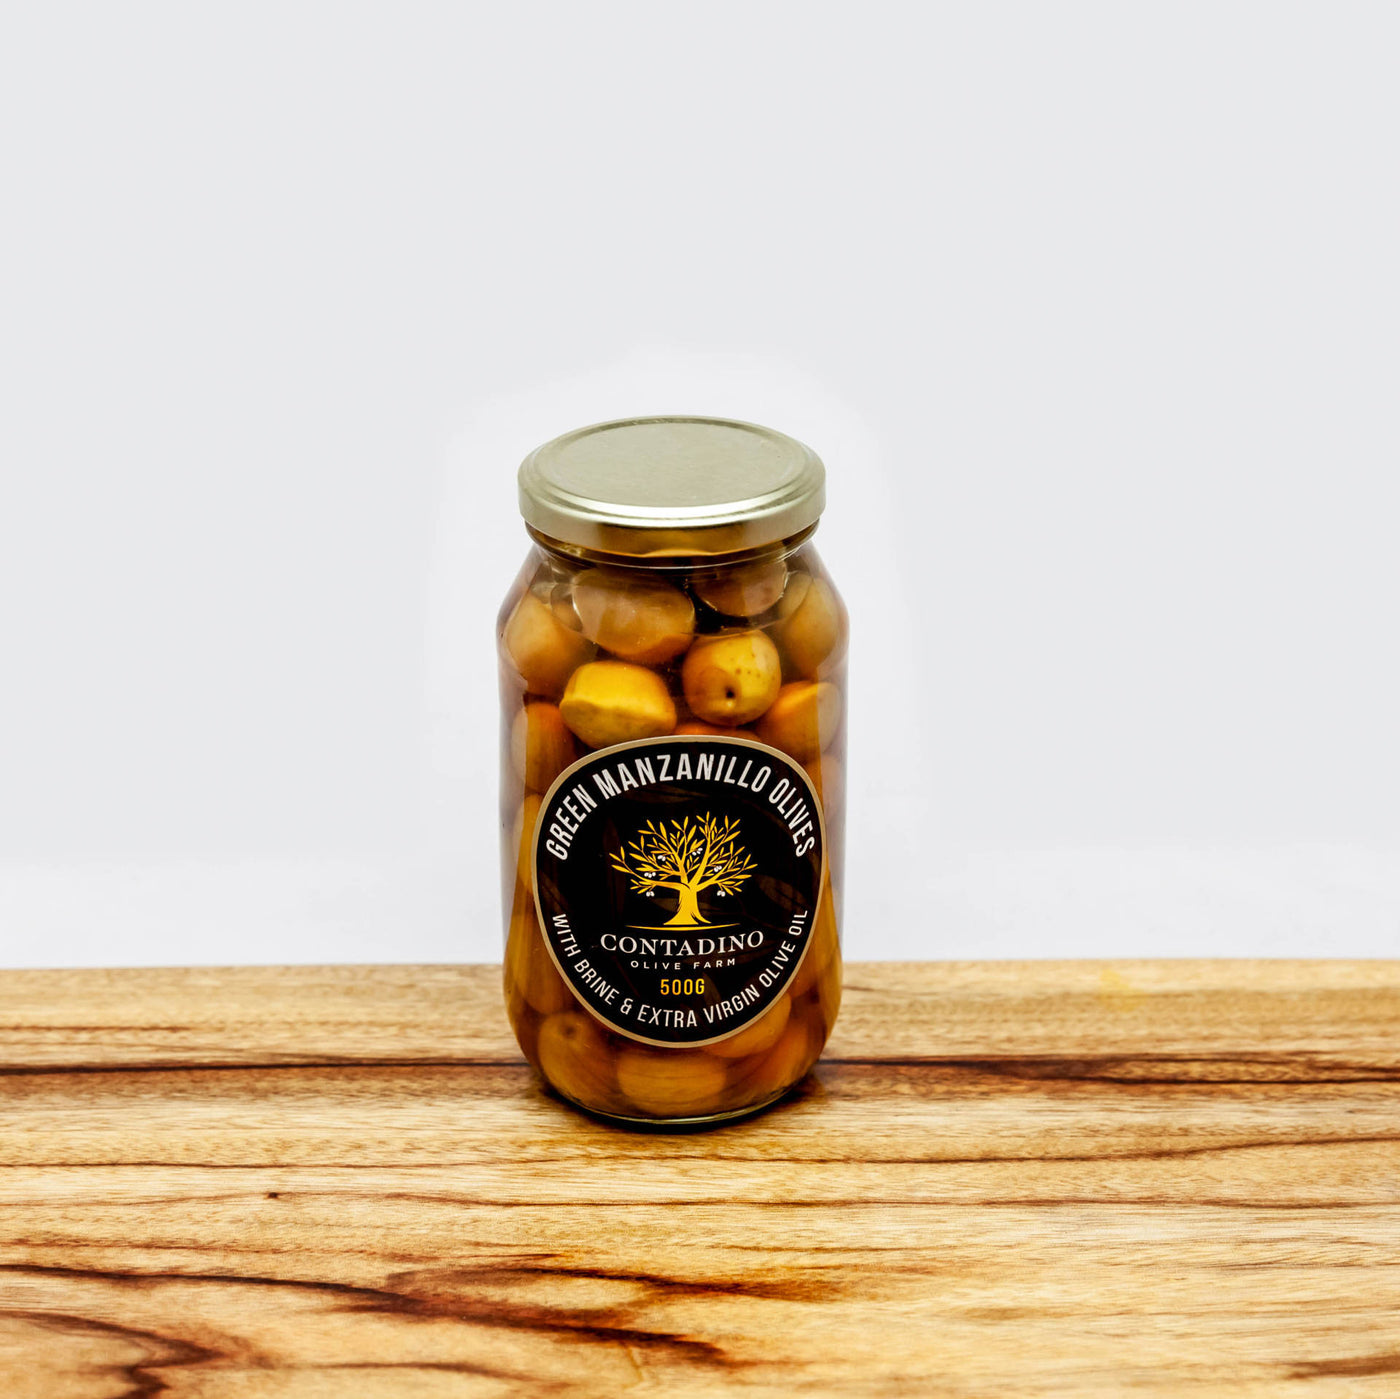 Green Manzanillo Olives - Brine & Extra Virgin Olive Oil - 500g